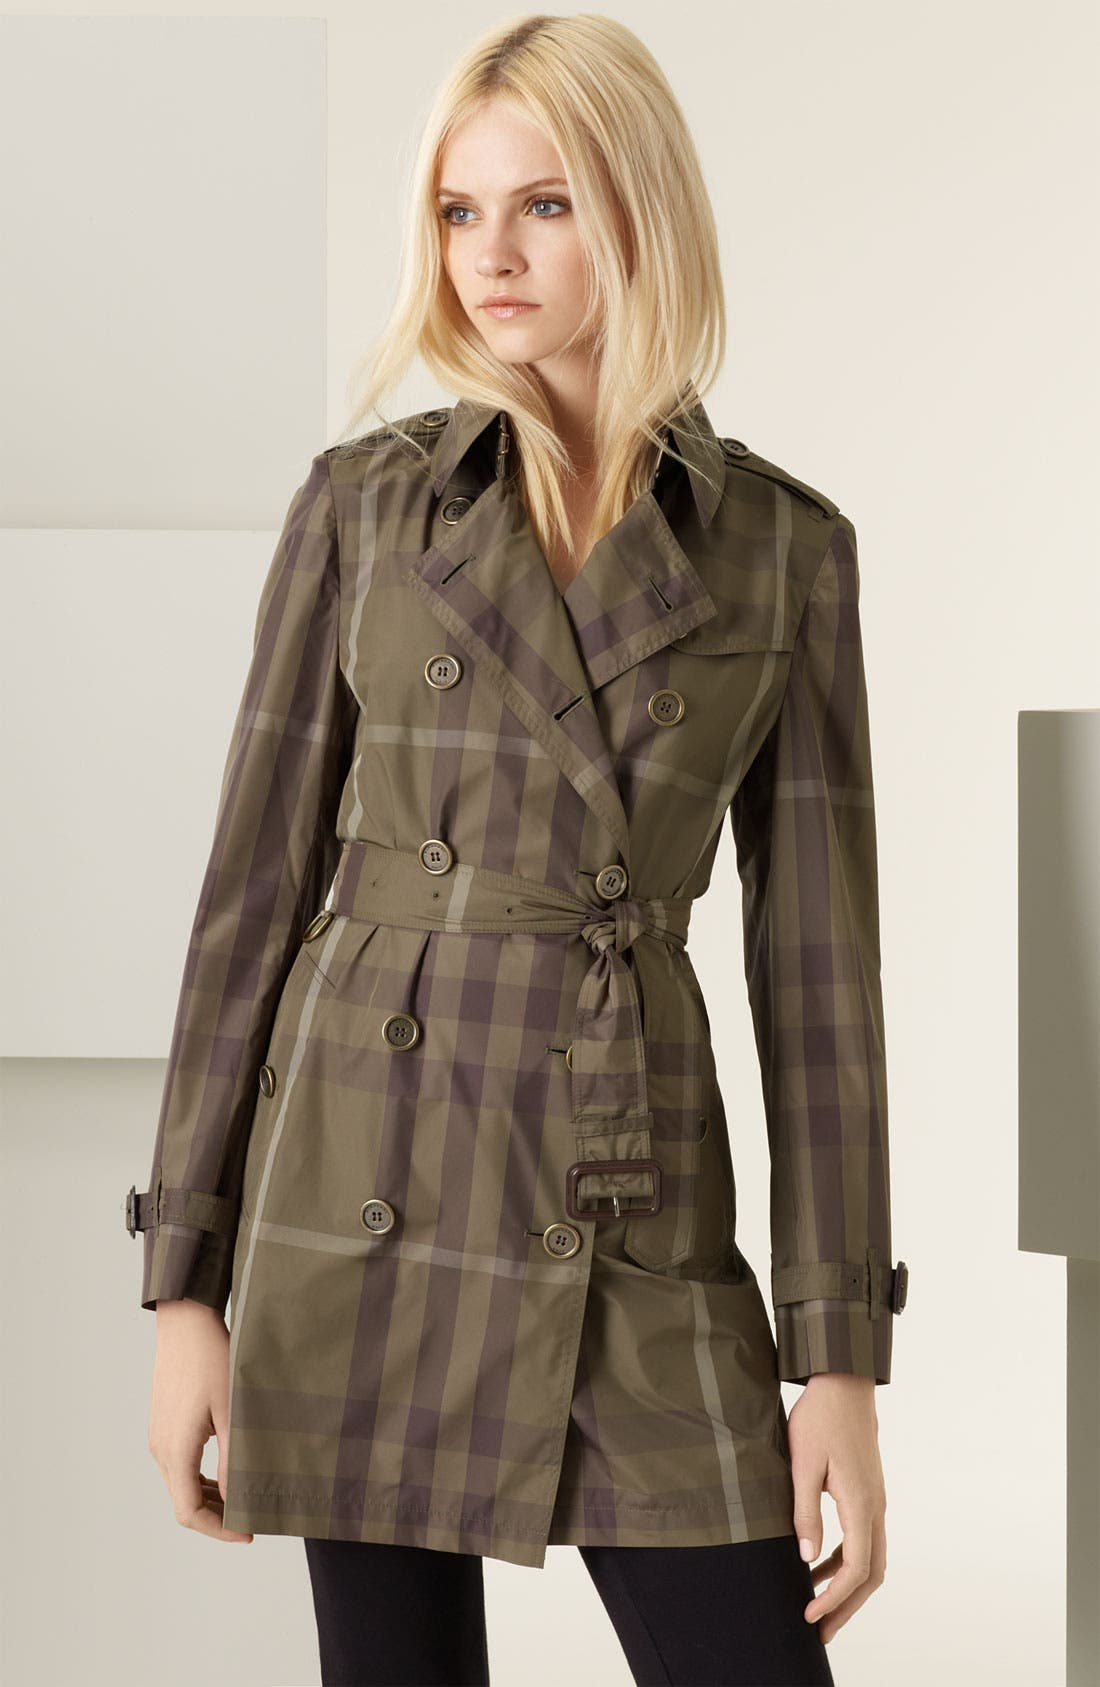 Giant Check Print Packable Trench Coat, Main, color, 261